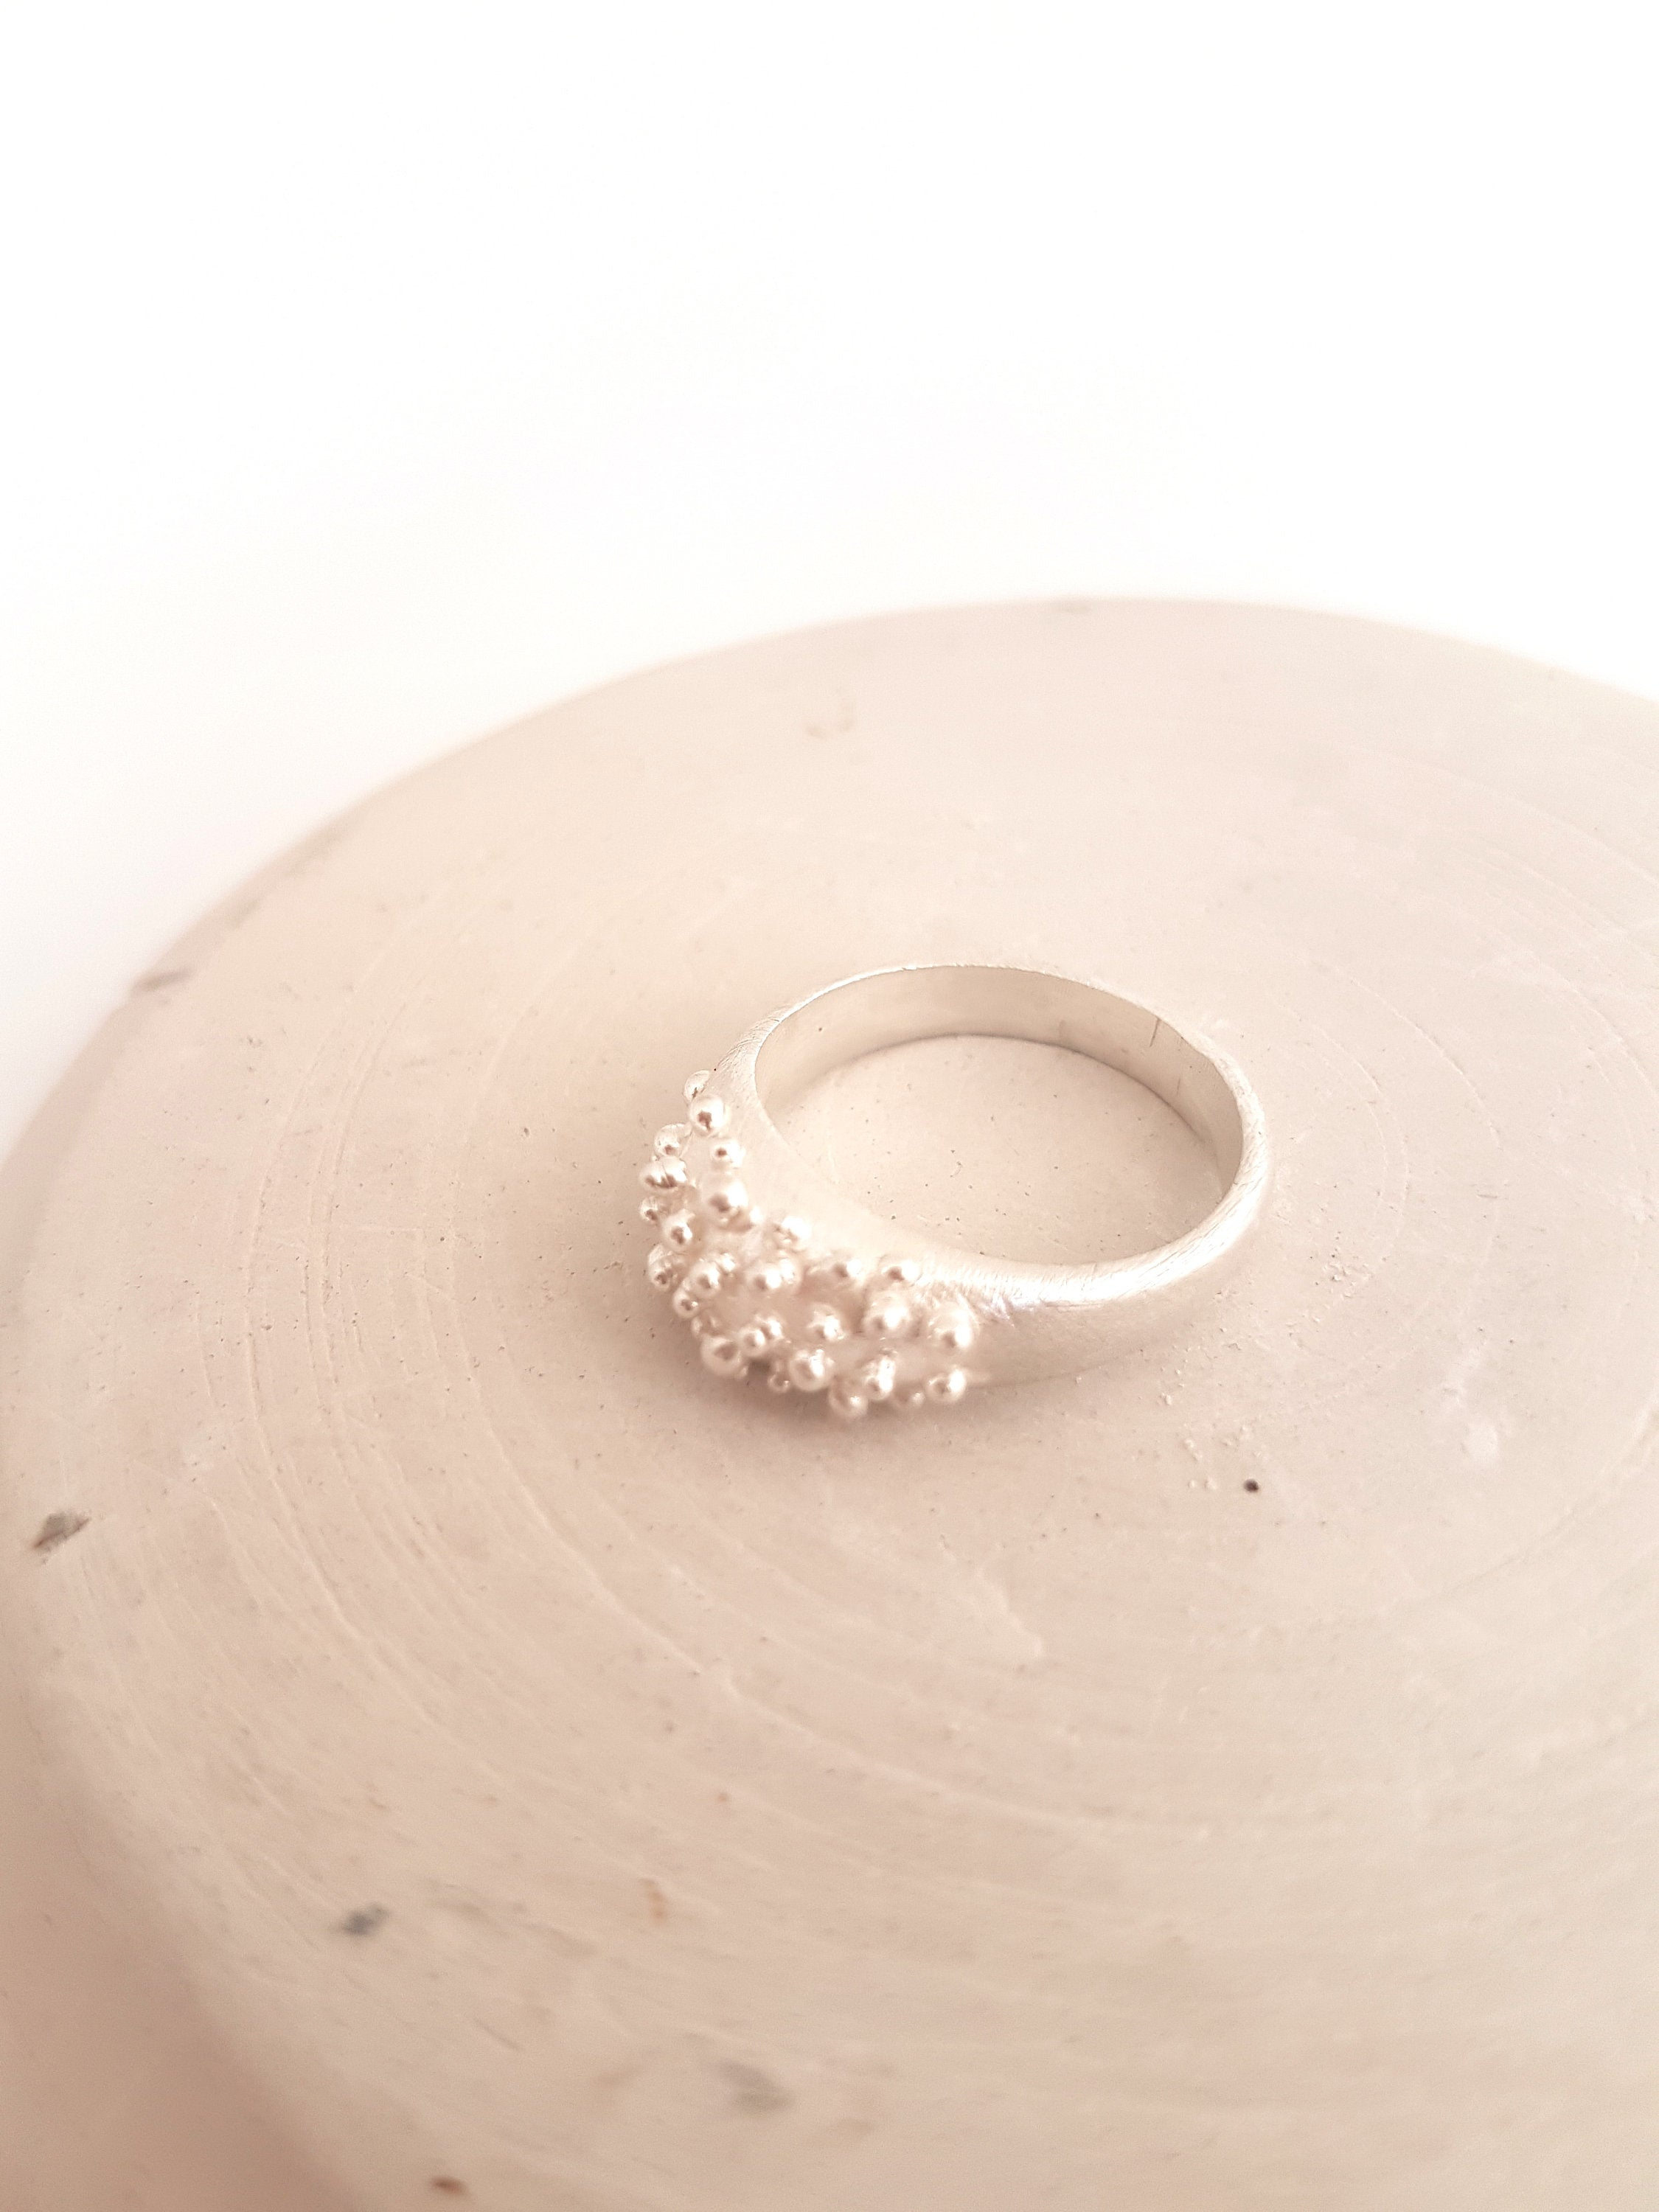 Bubbles ring in sterling silver,  dainty original ring with balls texture